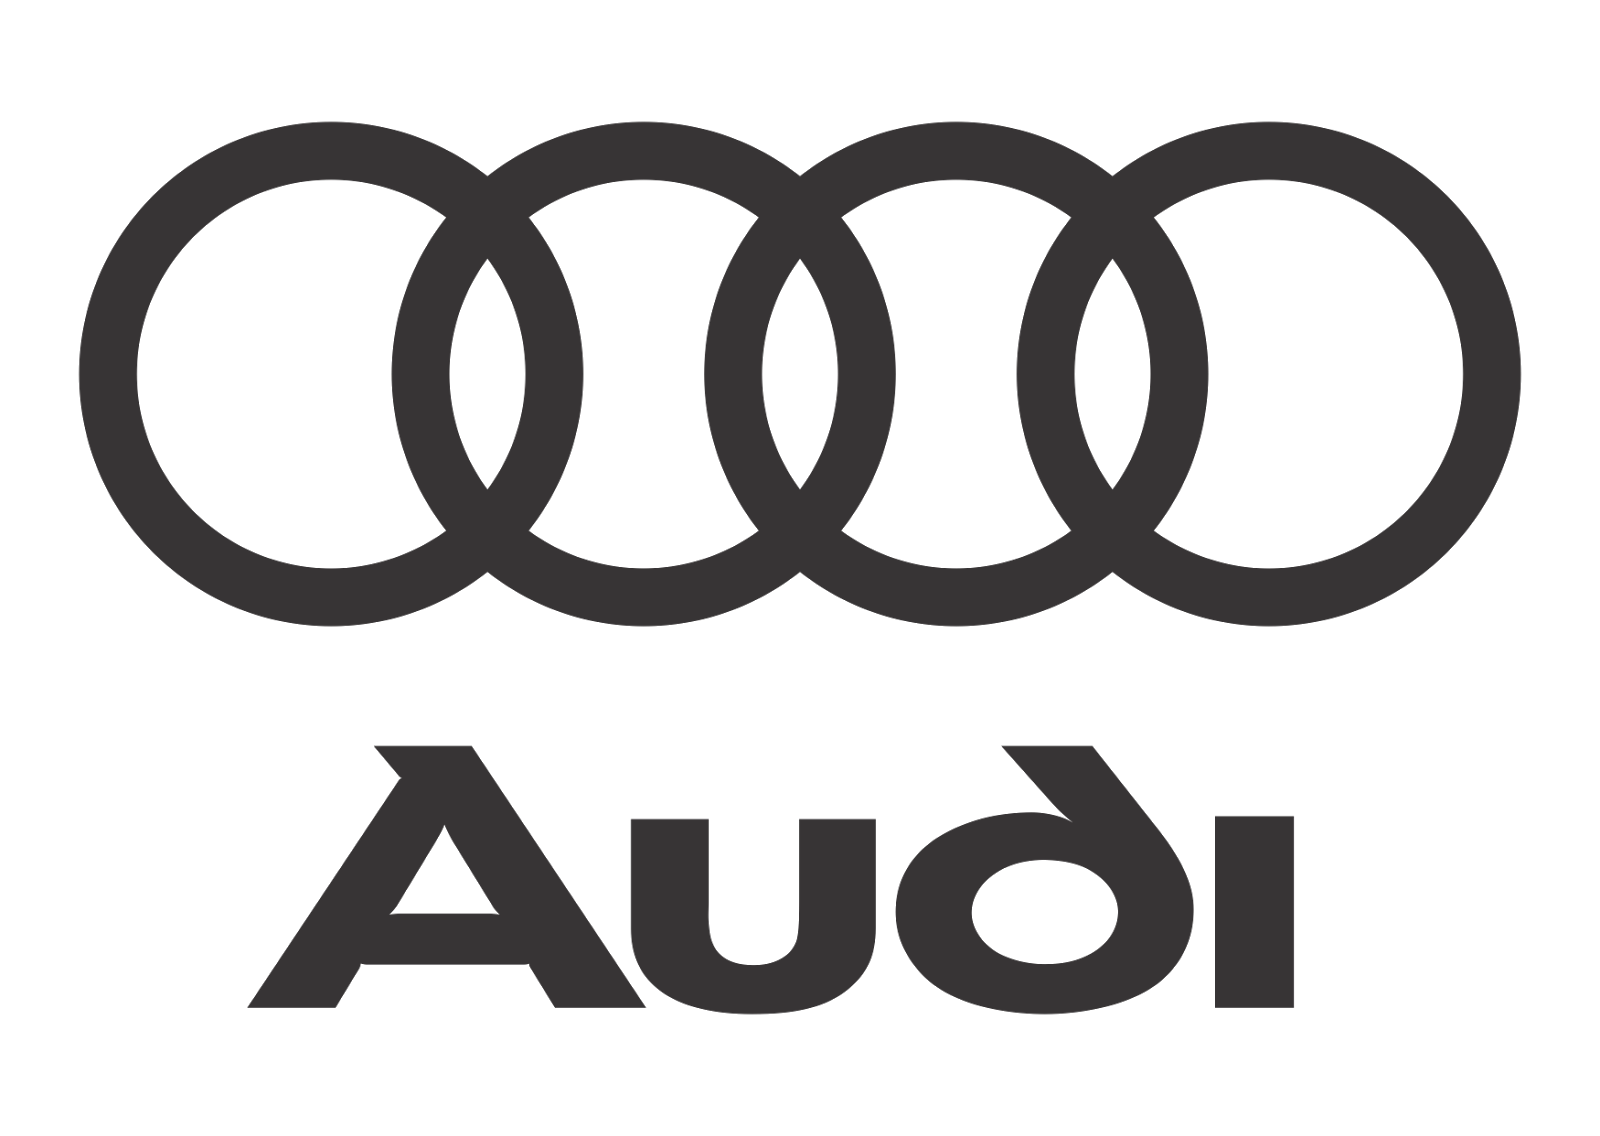 audi logo vector black white vector logo download audi logo audi logo google. Black Bedroom Furniture Sets. Home Design Ideas